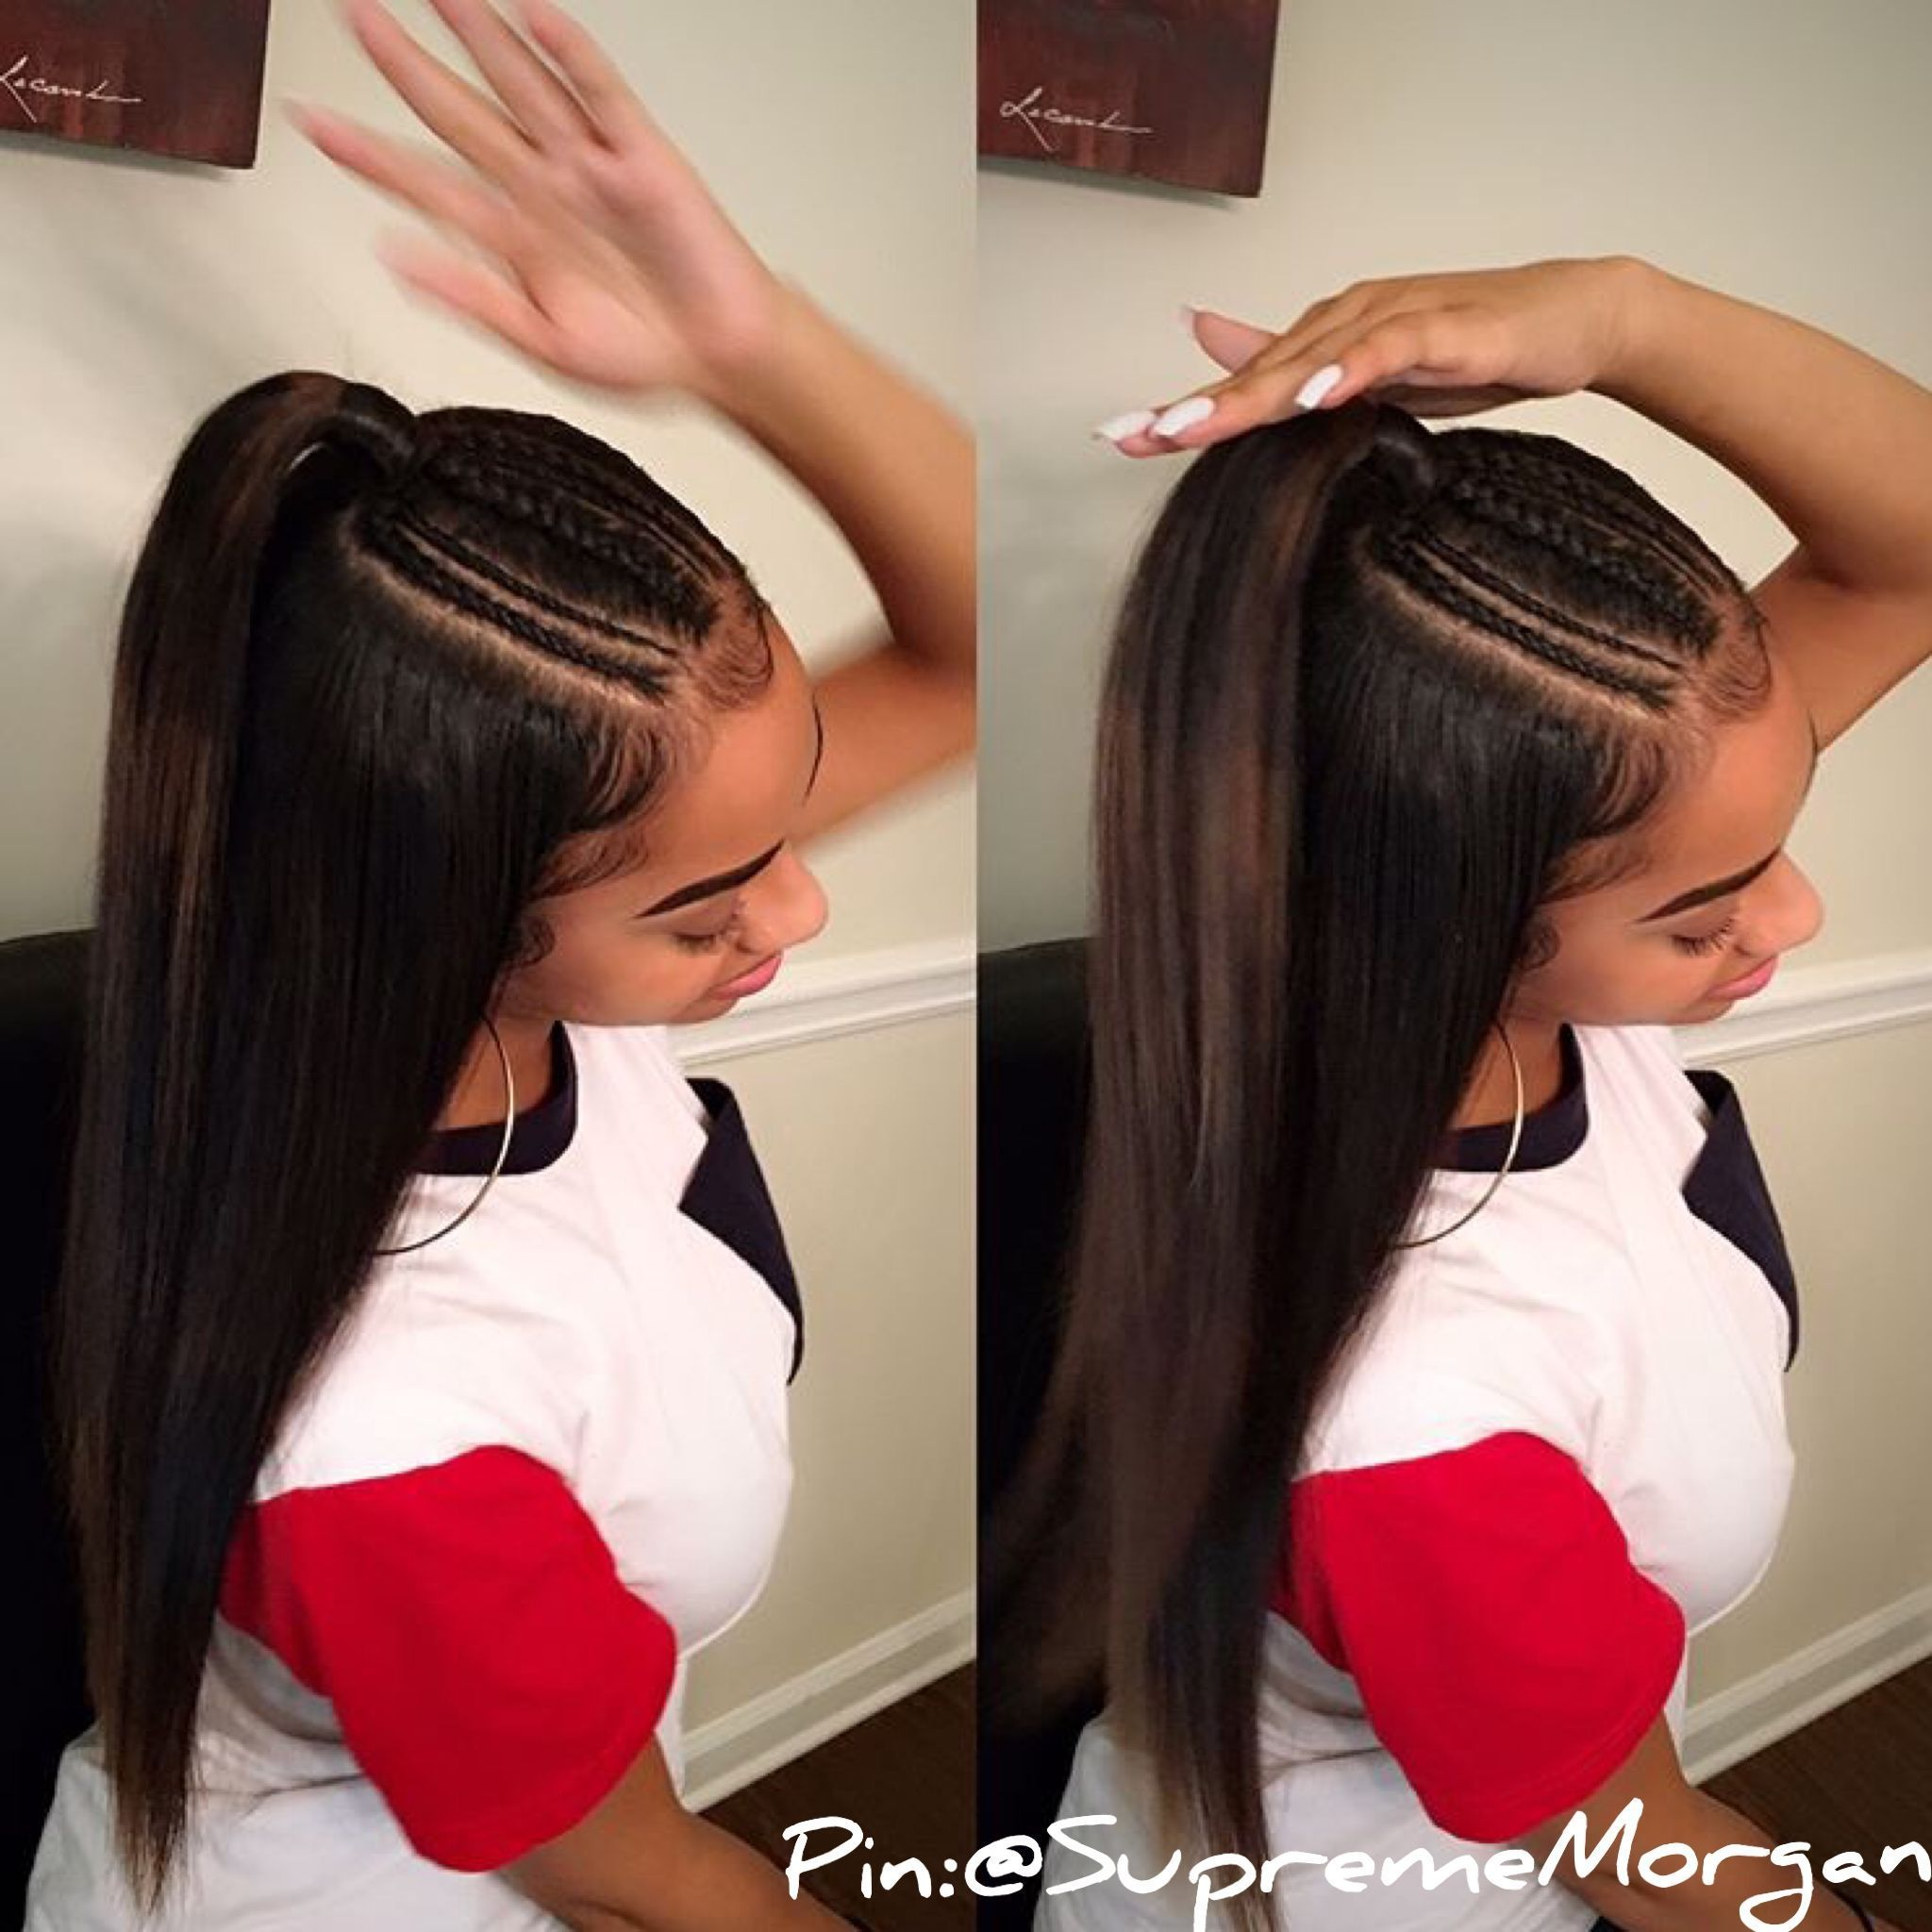 Straight Haircuts Attractive Hair Styles Designed For Straighter Hair Like The 1 2 Up Pony Tails Side B Hair Styles Natural Hair Styles Womens Hairstyles